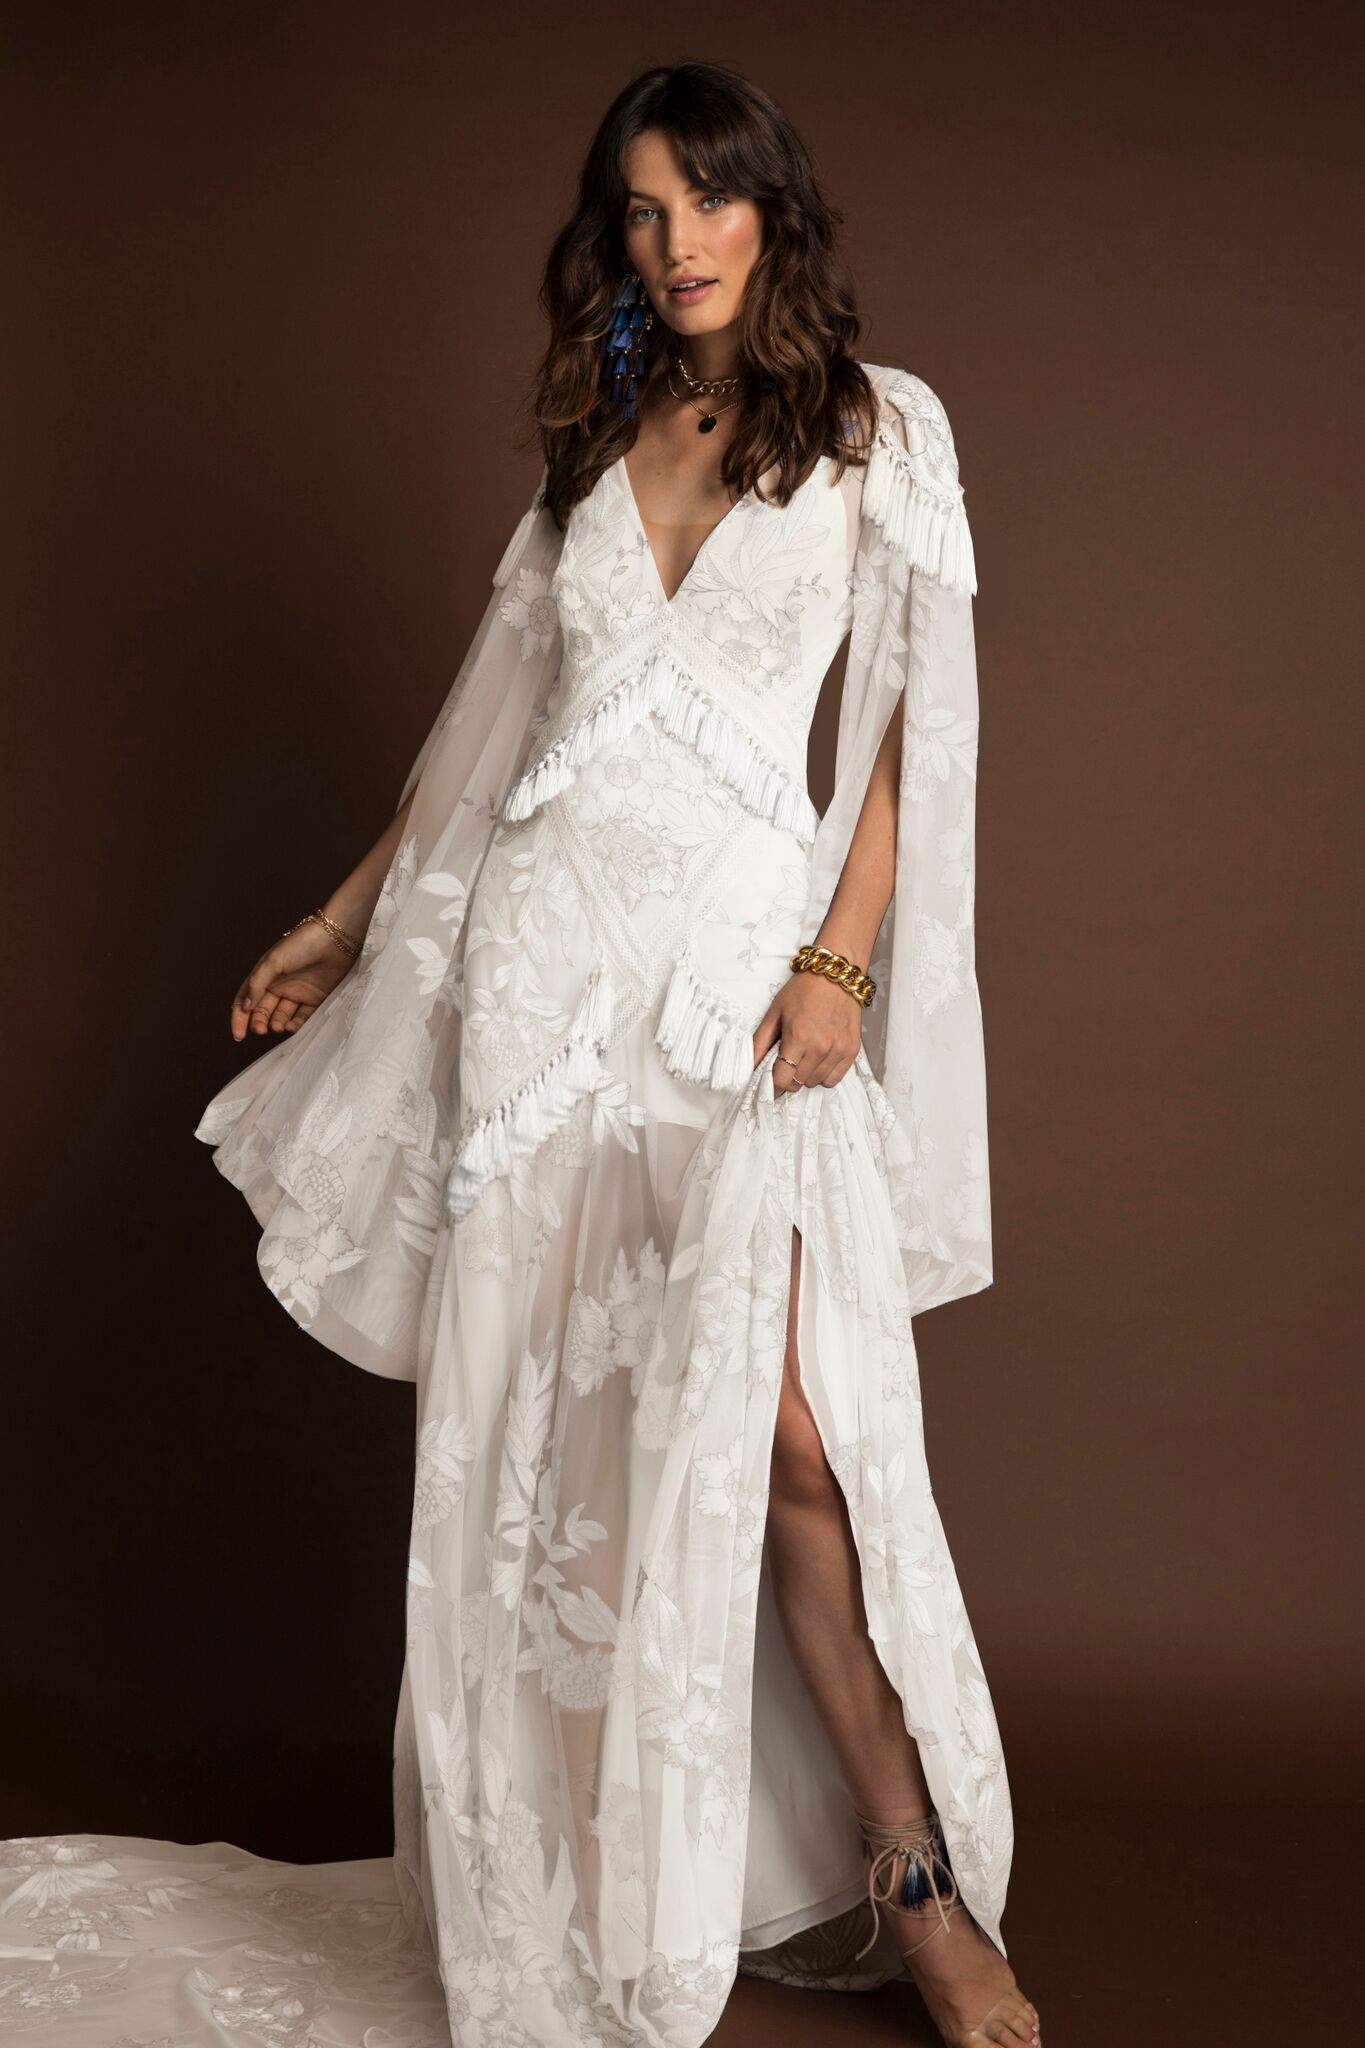 New rue de seine wedding dresses trunk shows bohemian wedding